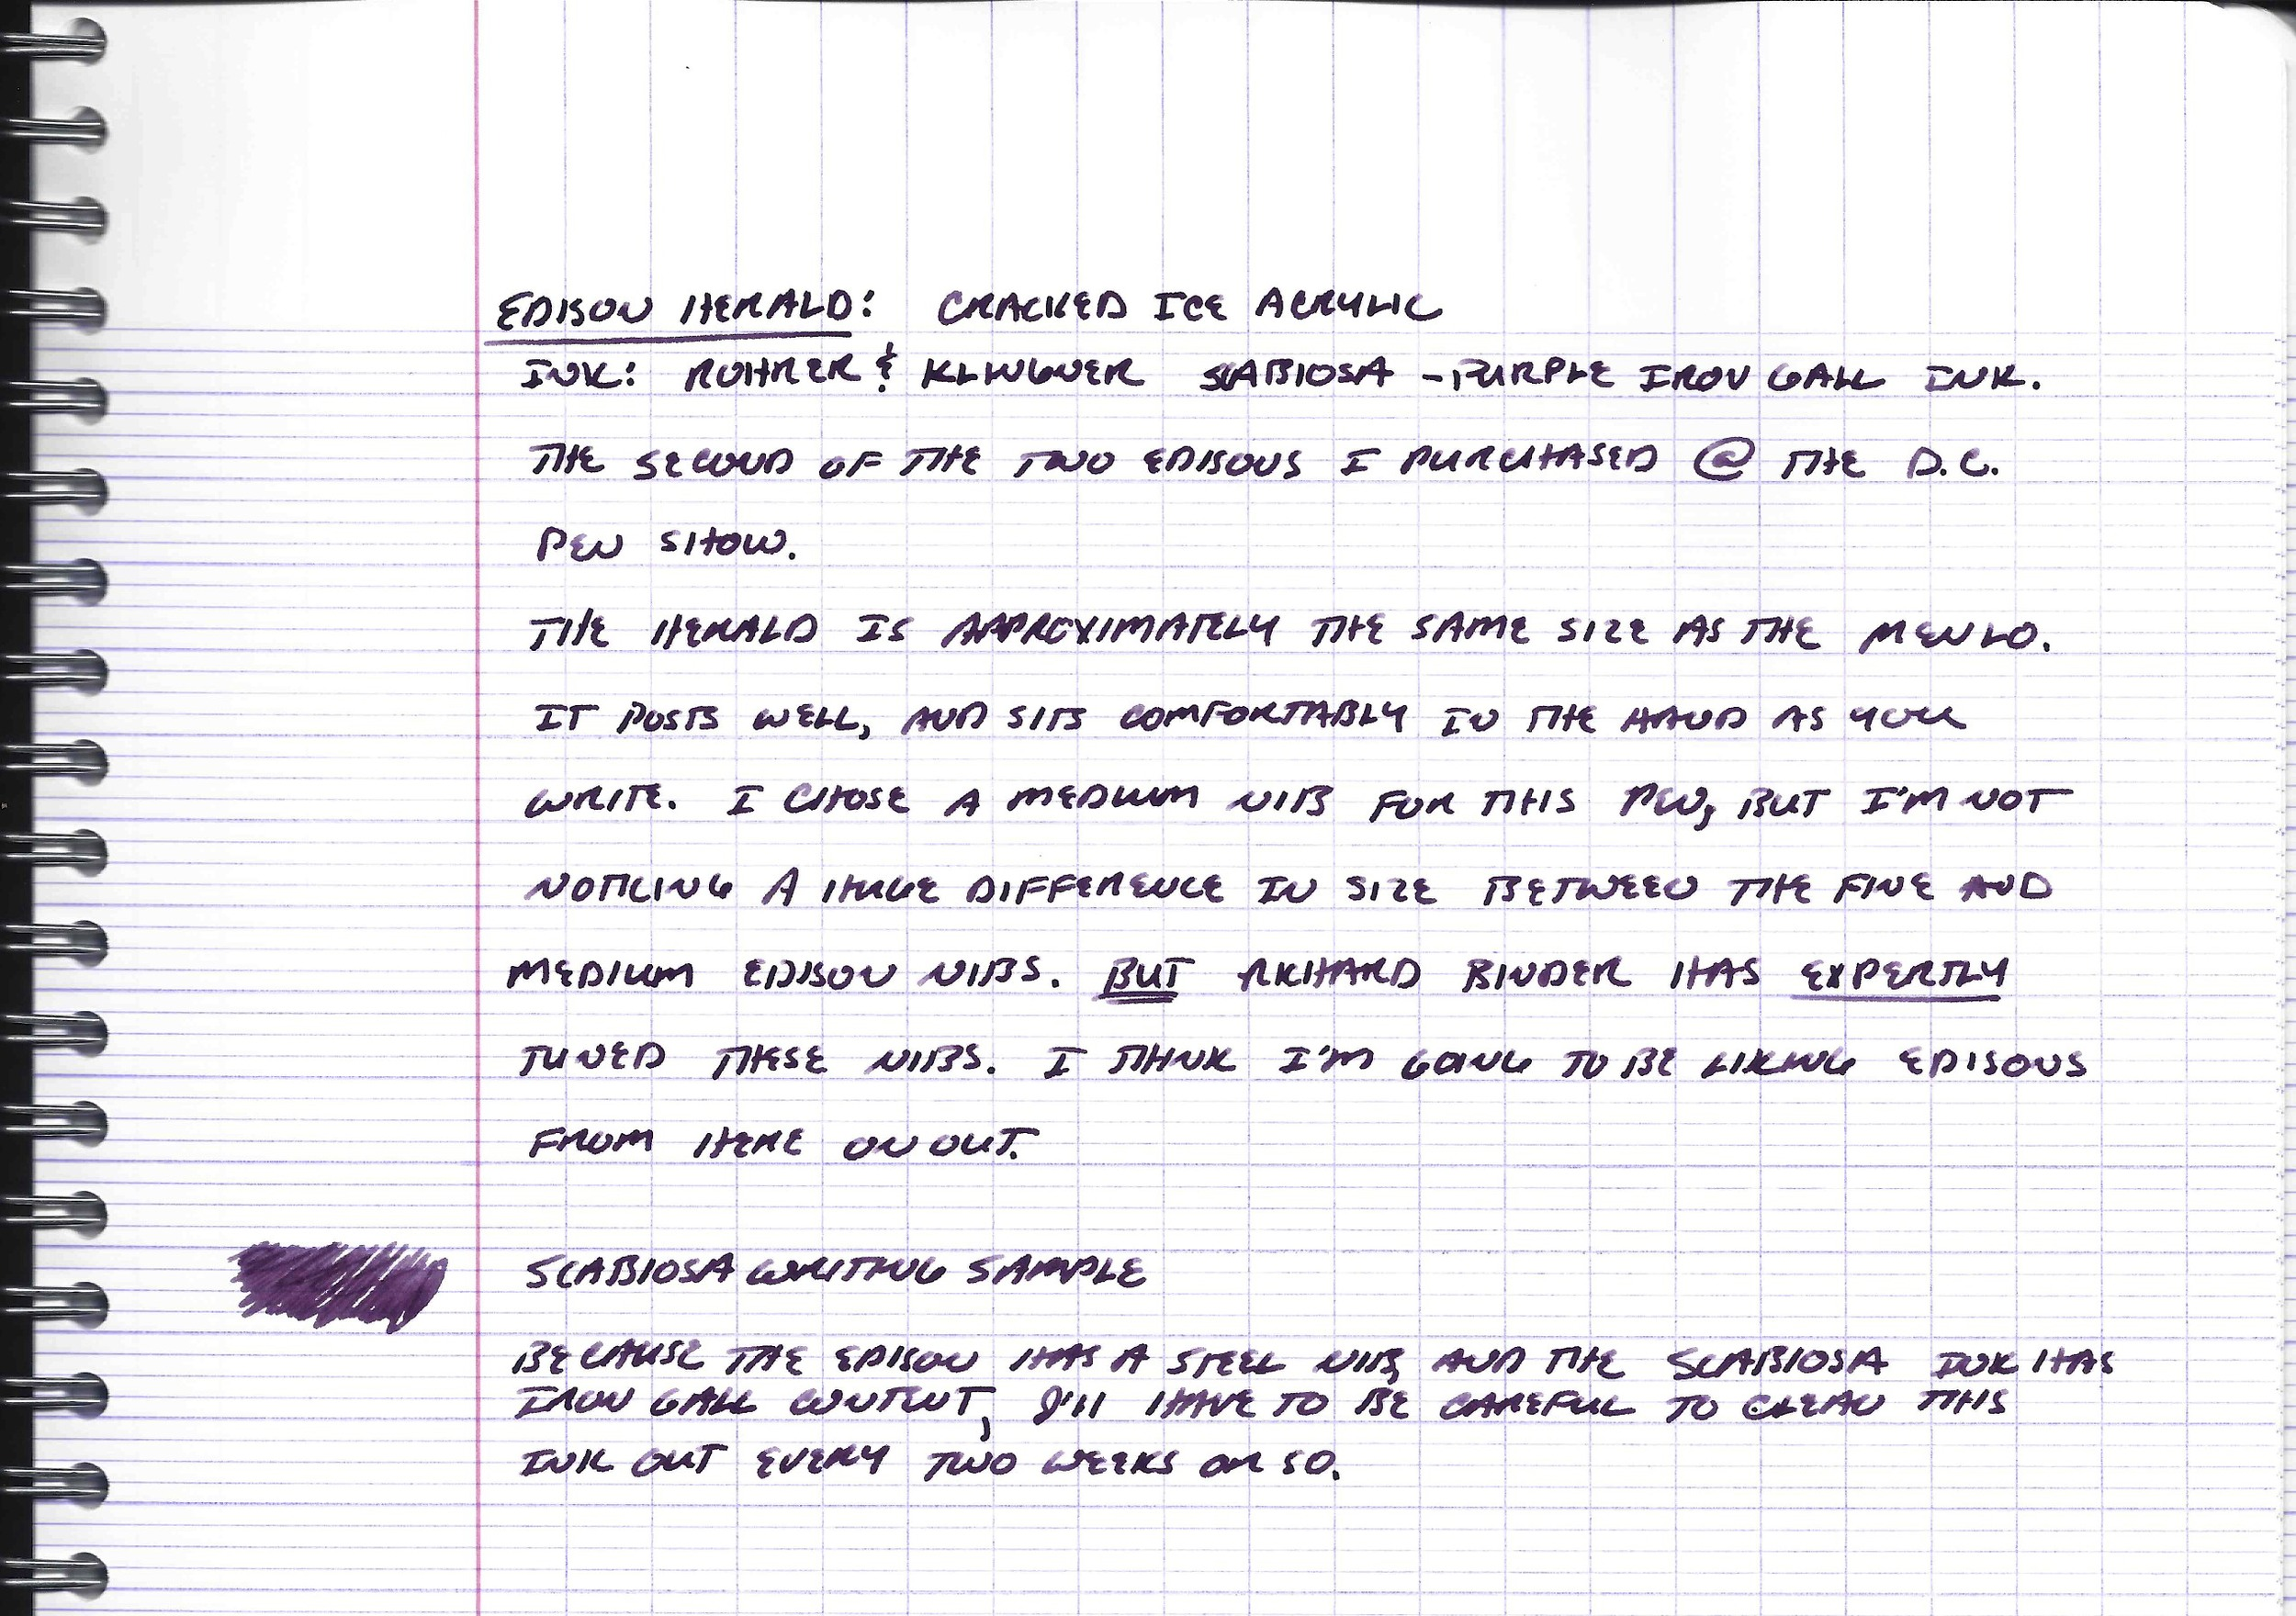 Edison Herald handwritten review on Clairefontaine french-ruled paper in Rohrer & Klingner Scabiosa Ink.